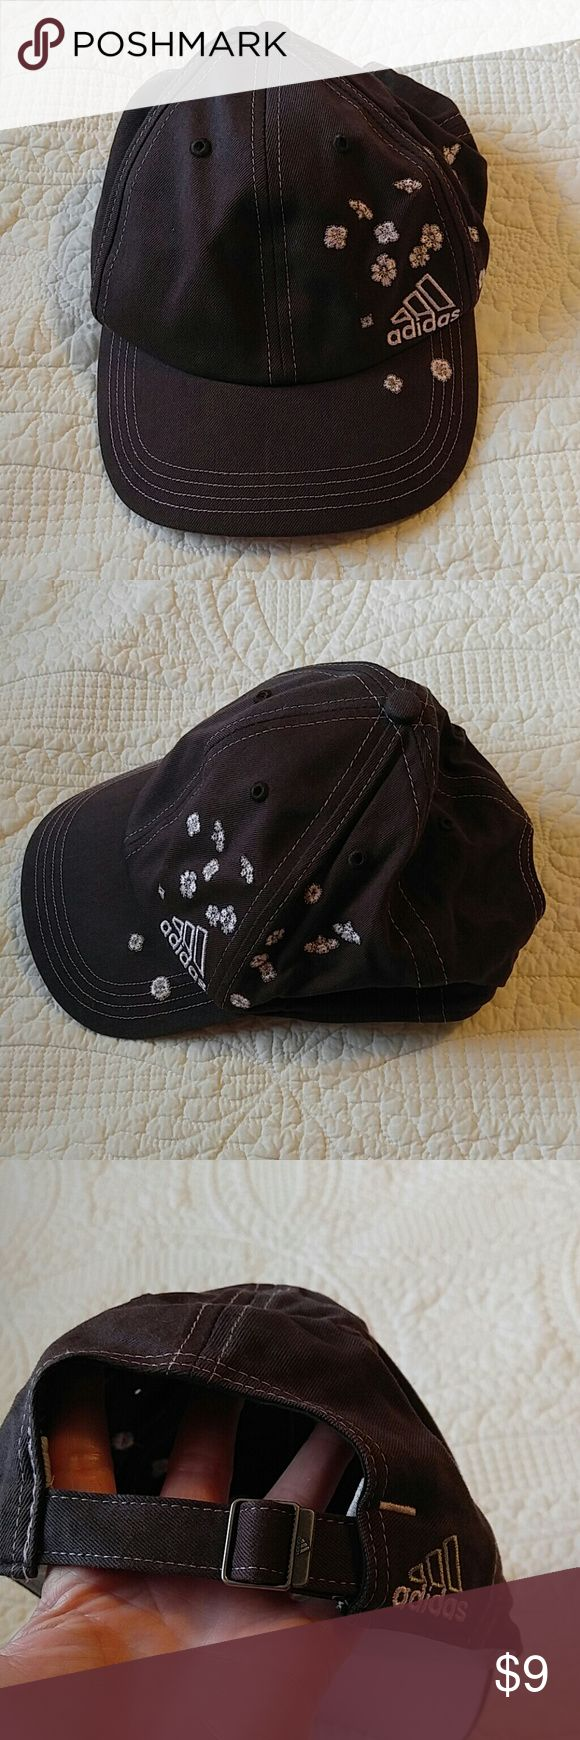 Adidas baseball cap hat Short bib pink flowers Needs cleaning adjustable adidas Accessories Hats